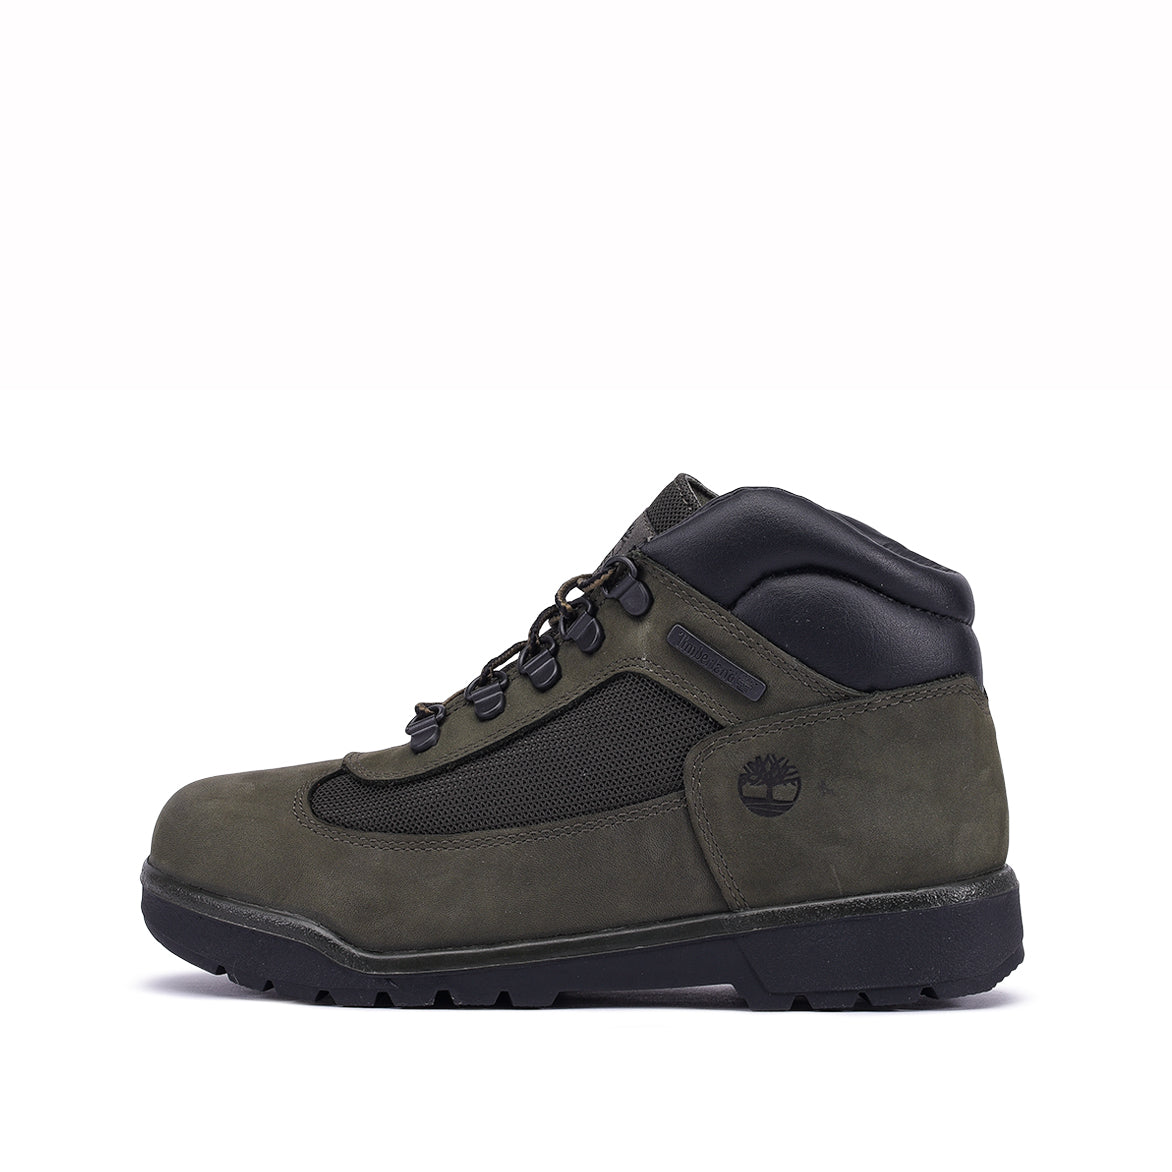 WATERPROOF FIELD BOOT (JUNIOR) - FOREST NIGHT